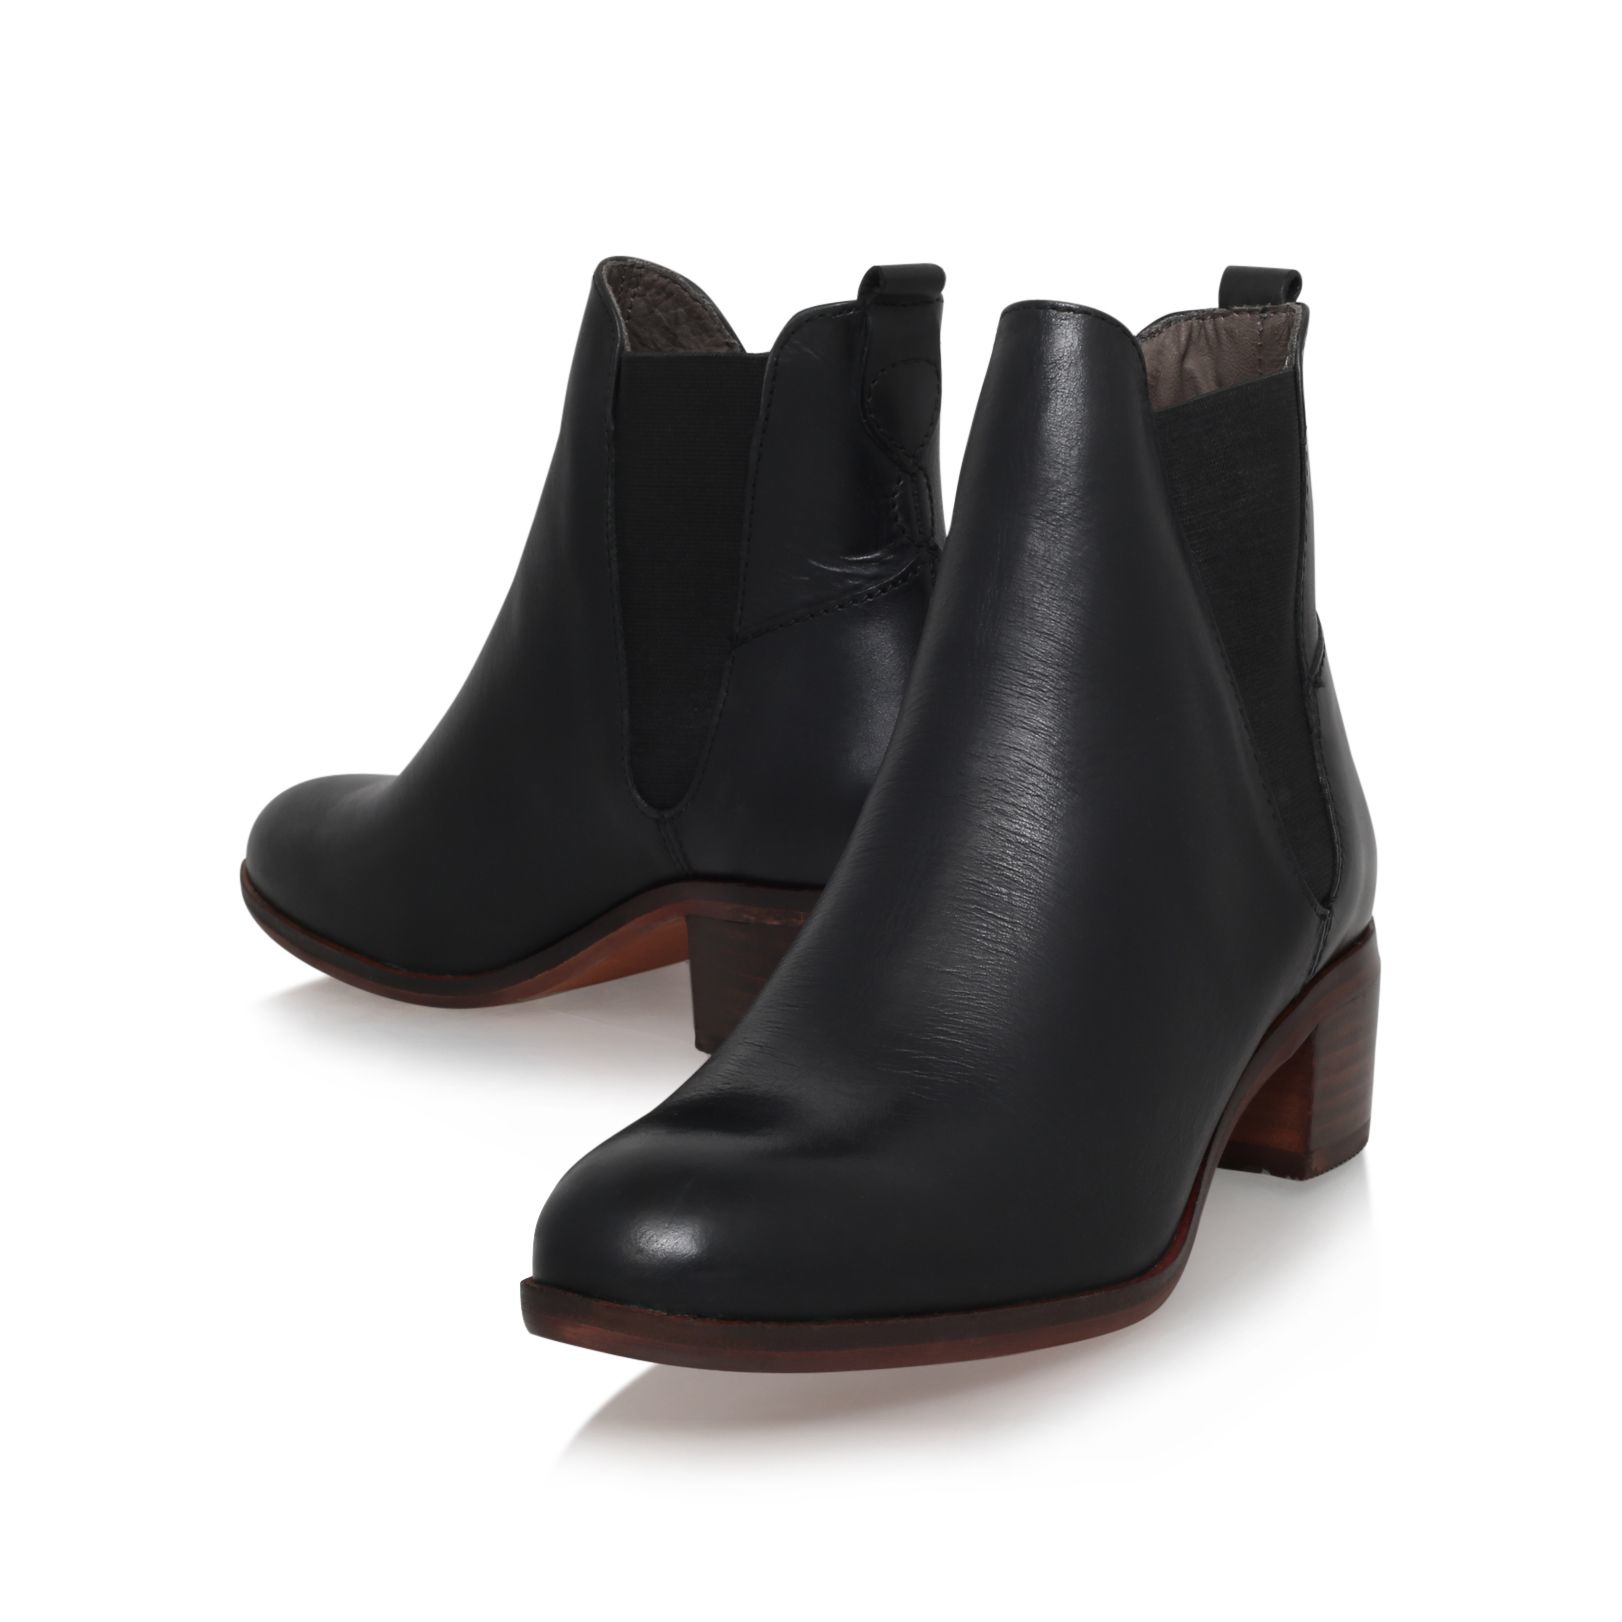 H by hudson Compound Mid Block Heel Ankle Boots in Black ...